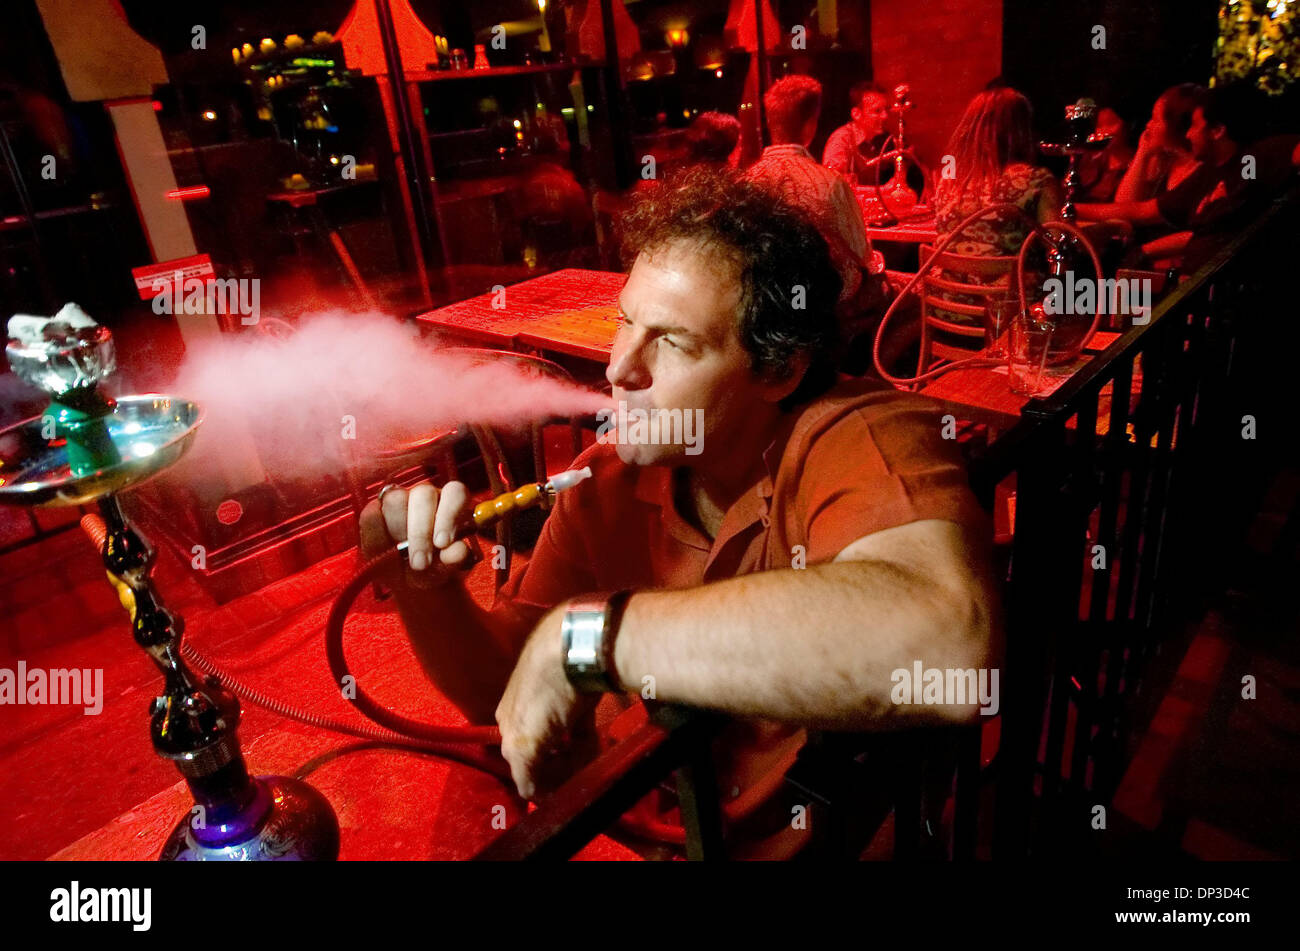 Jun 29, 2006; Sacramento, CA, USA;  Kasbah Lounge owner Paul Ringstrom smokes a hookah at his Kasbah Lounge in Sacramento Stock Photo